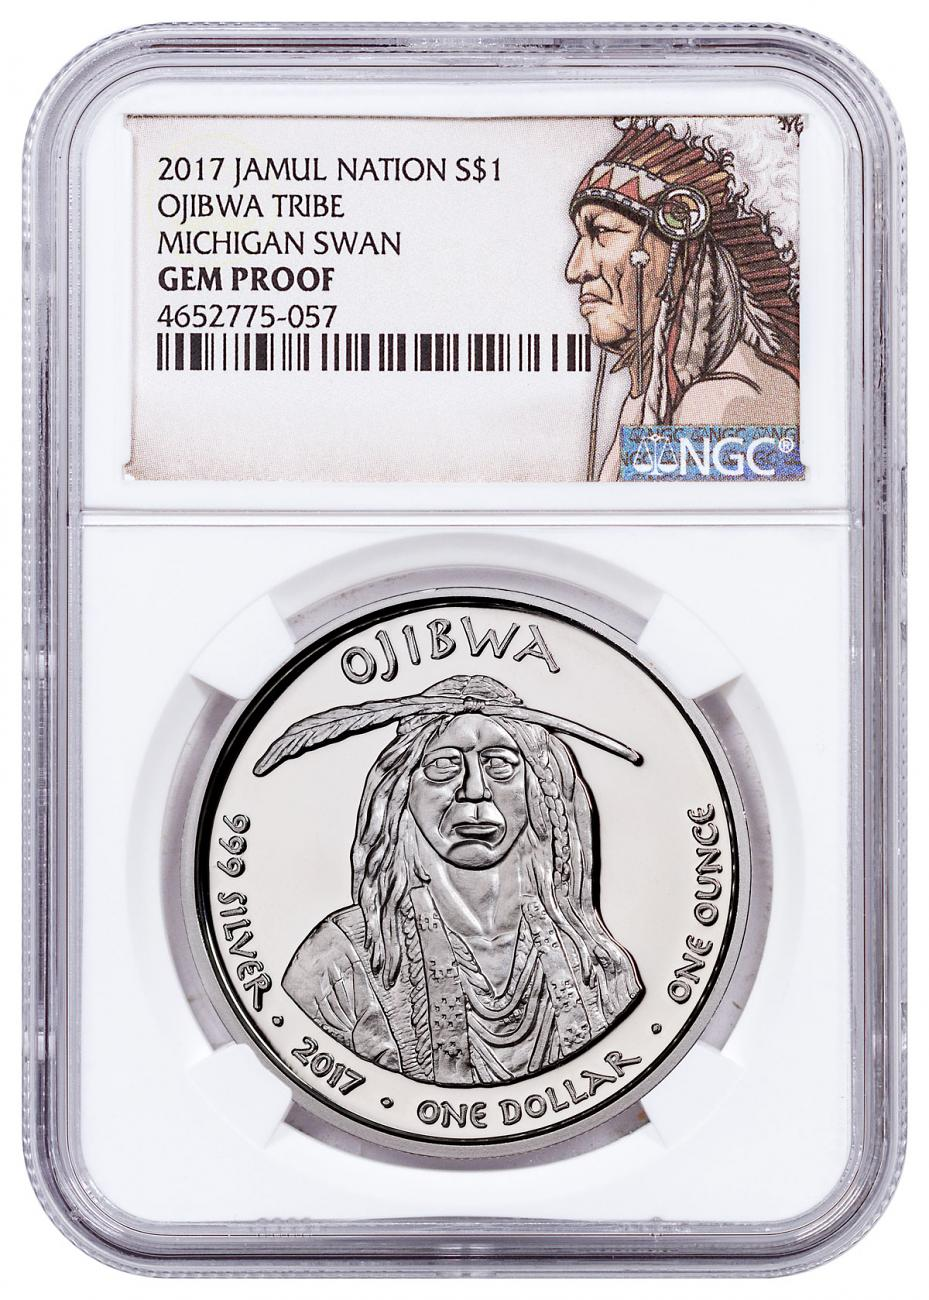 2017 Native American Silver Dollar - Michigan Ojibwa - Swan 1 oz Silver Proof Coin NGC GEM Proof Native American Label